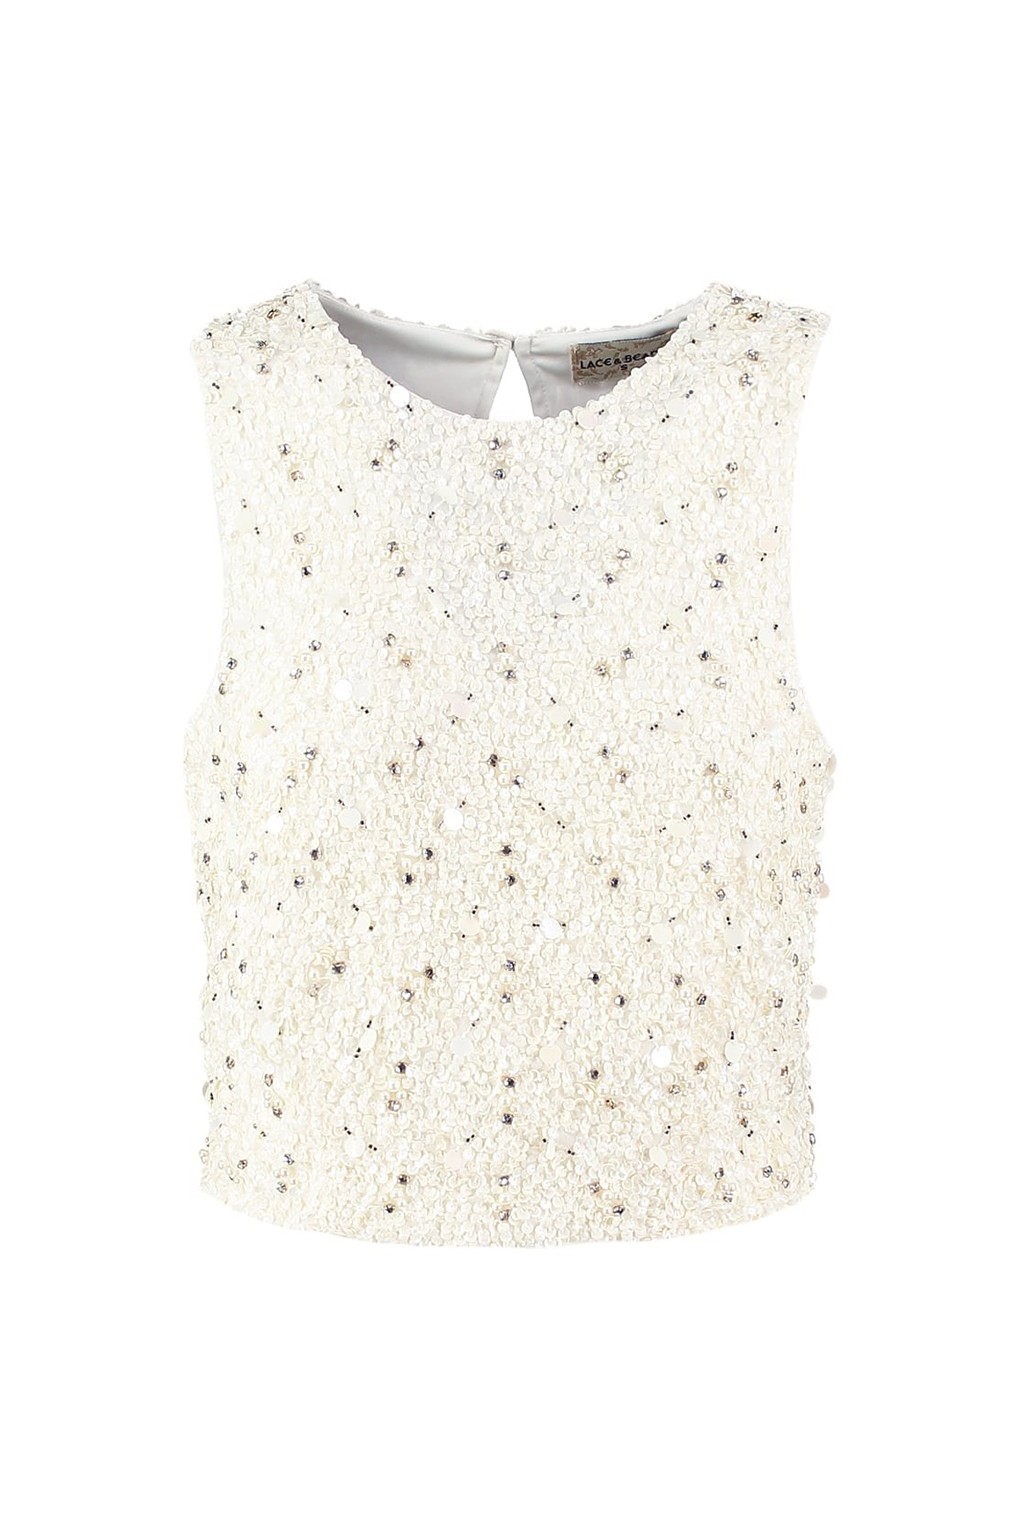 The Top 10 Fashion Trends Of 2012: LACE&BEADS PICASSO CREAM SEQUIN TOP